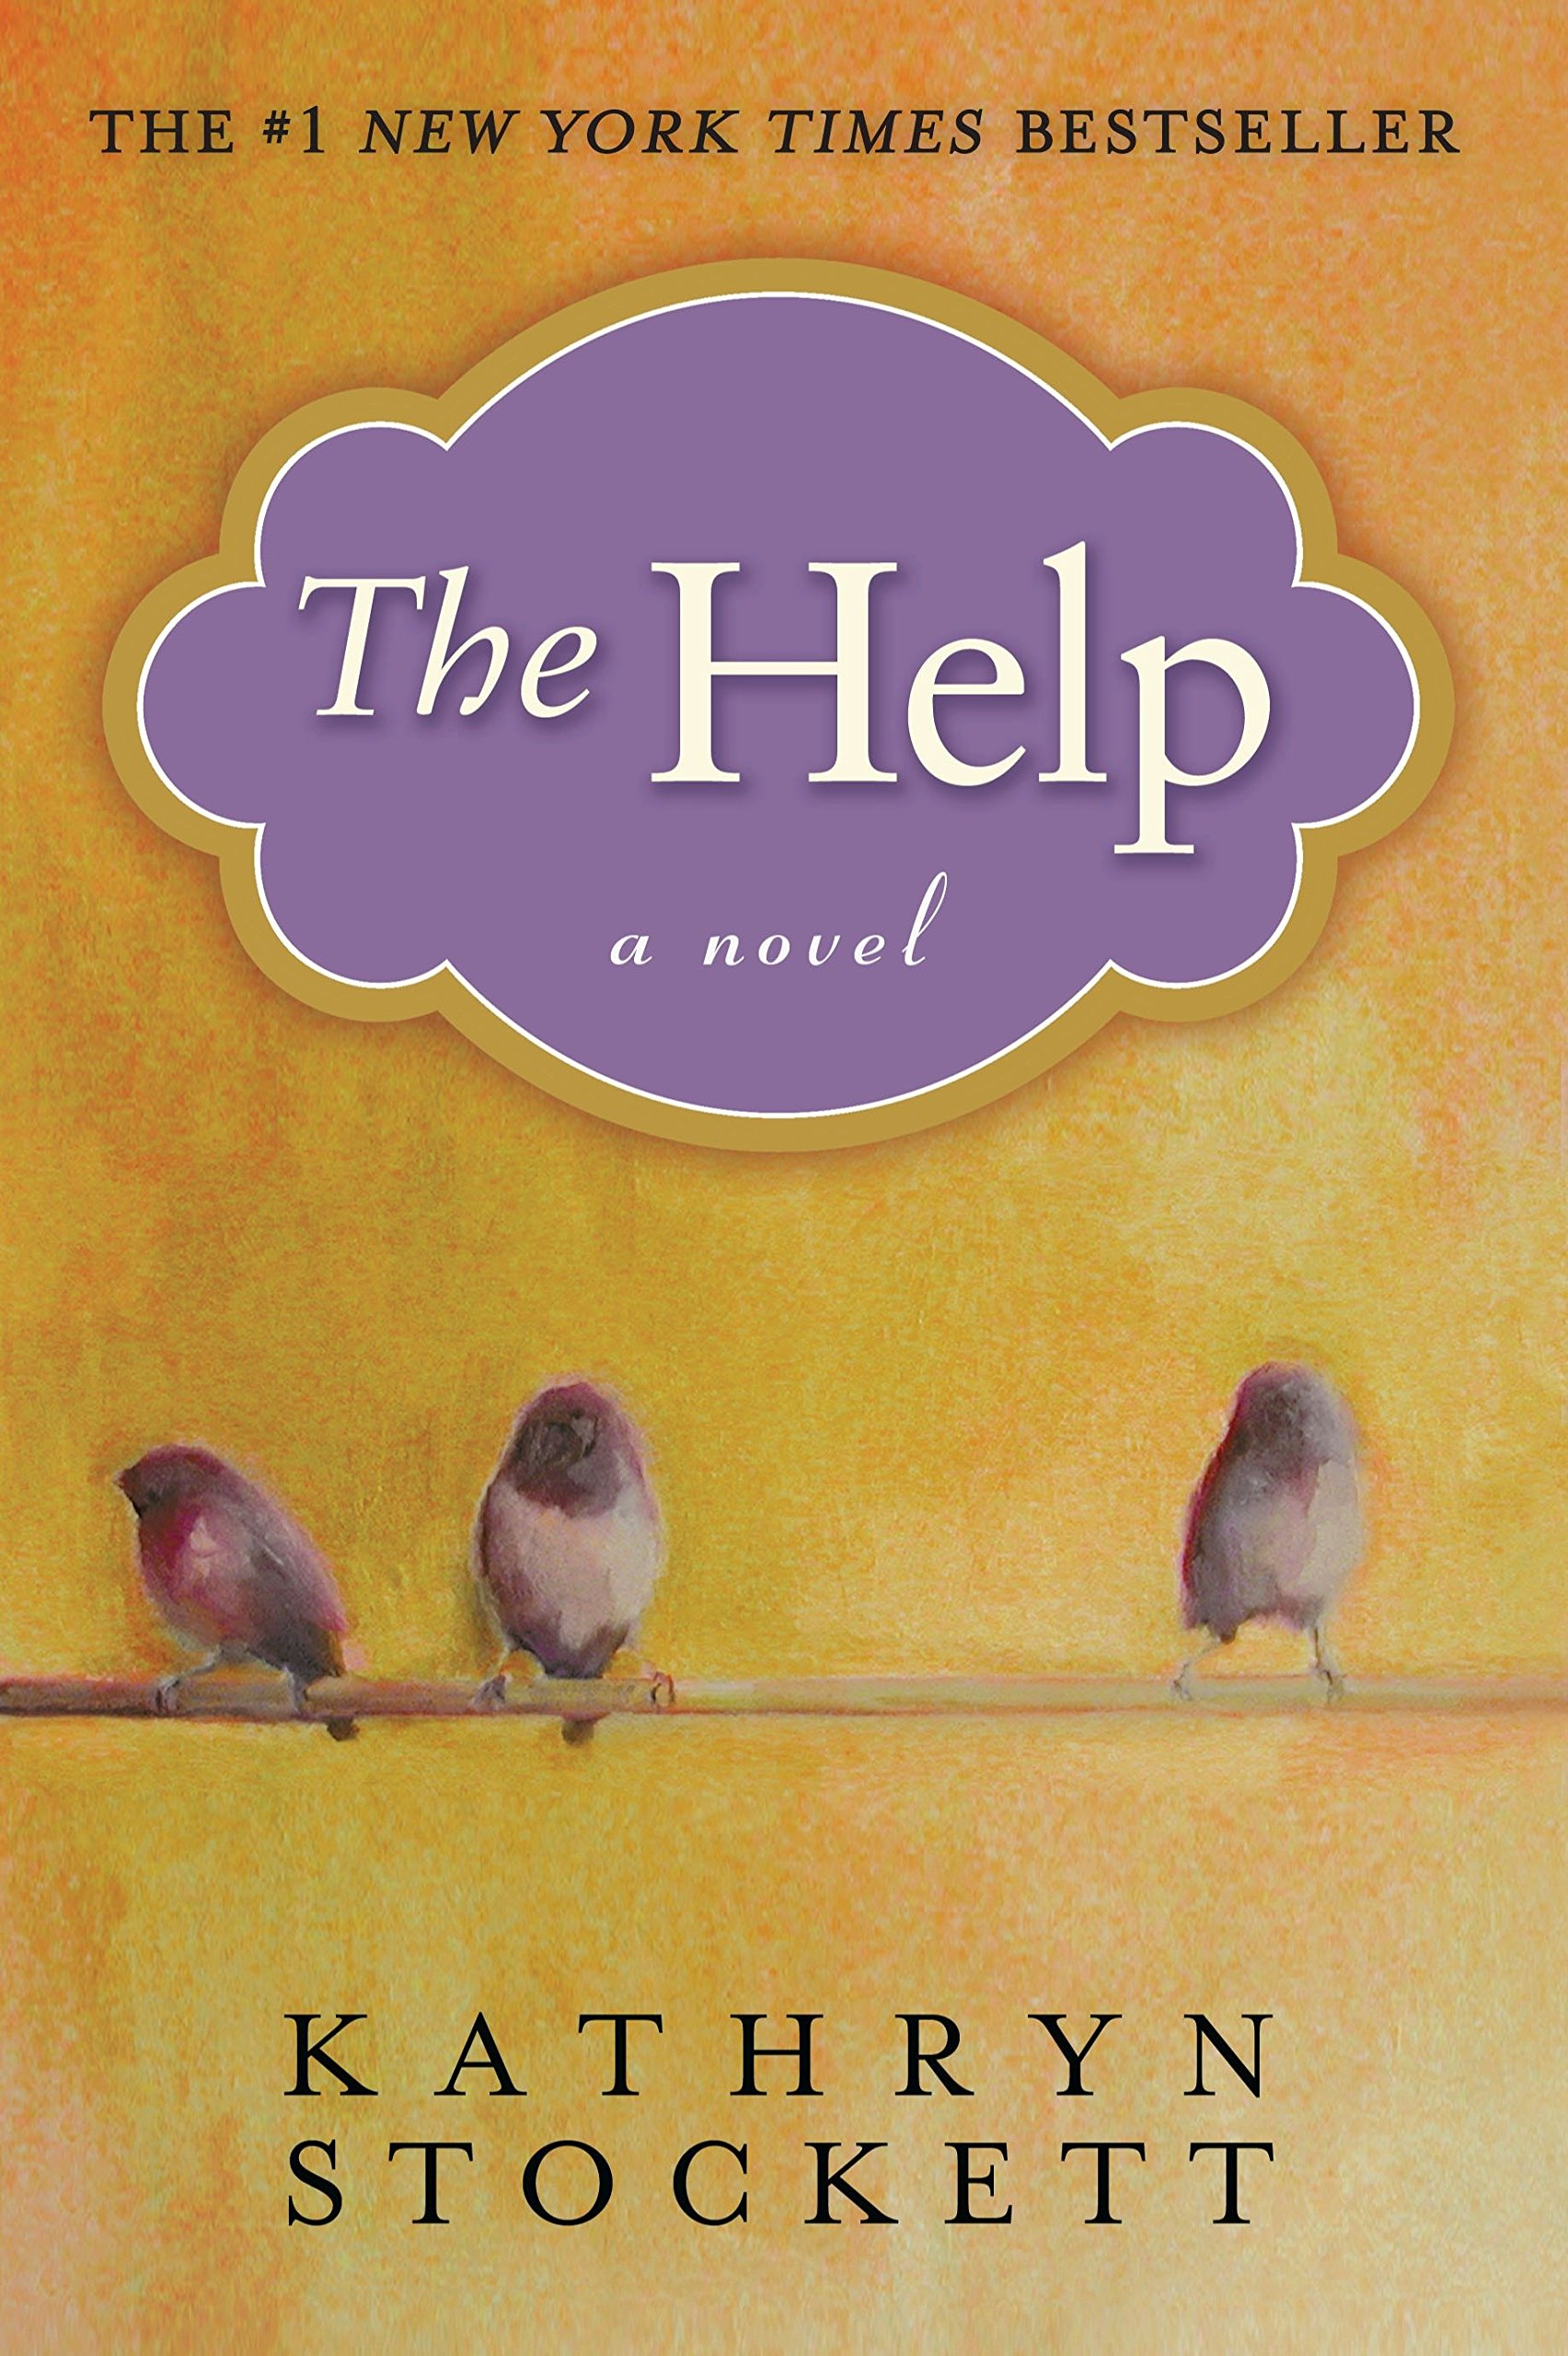 Image result for the help book cover